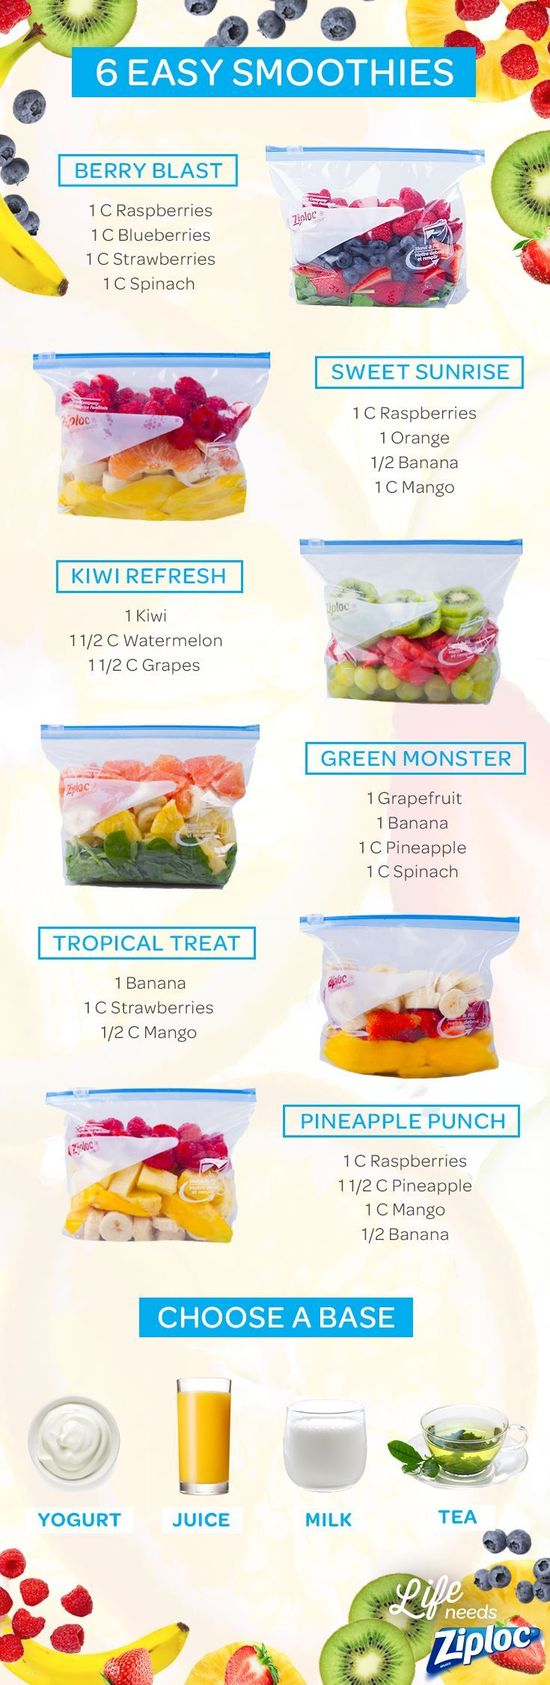 Smoothies  Board